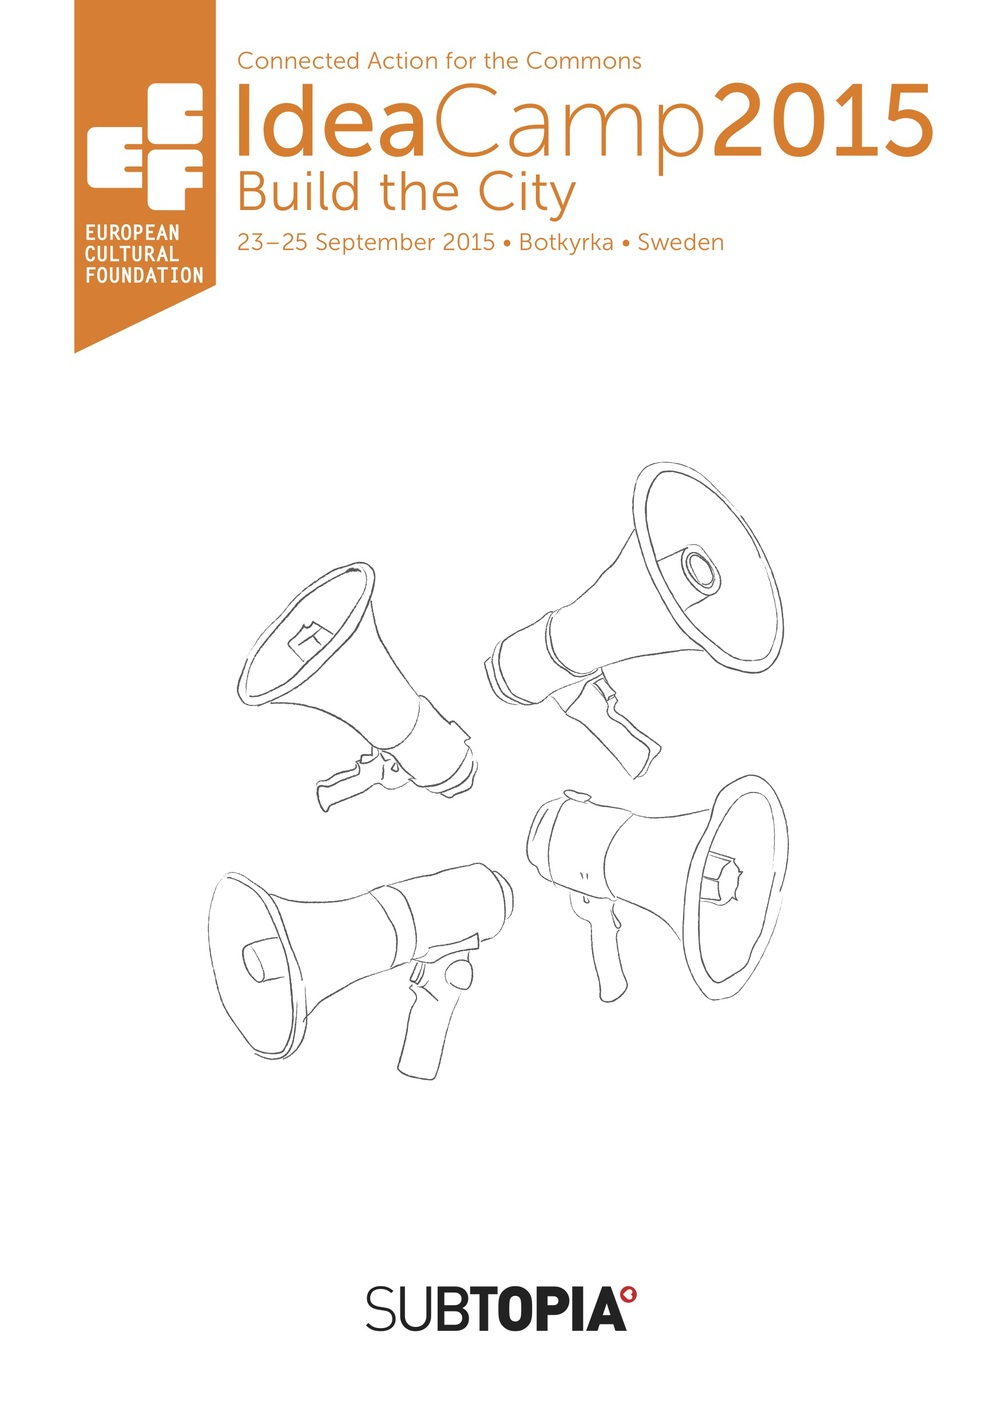 IdeaCamp2015_booklet cover_white.jpg